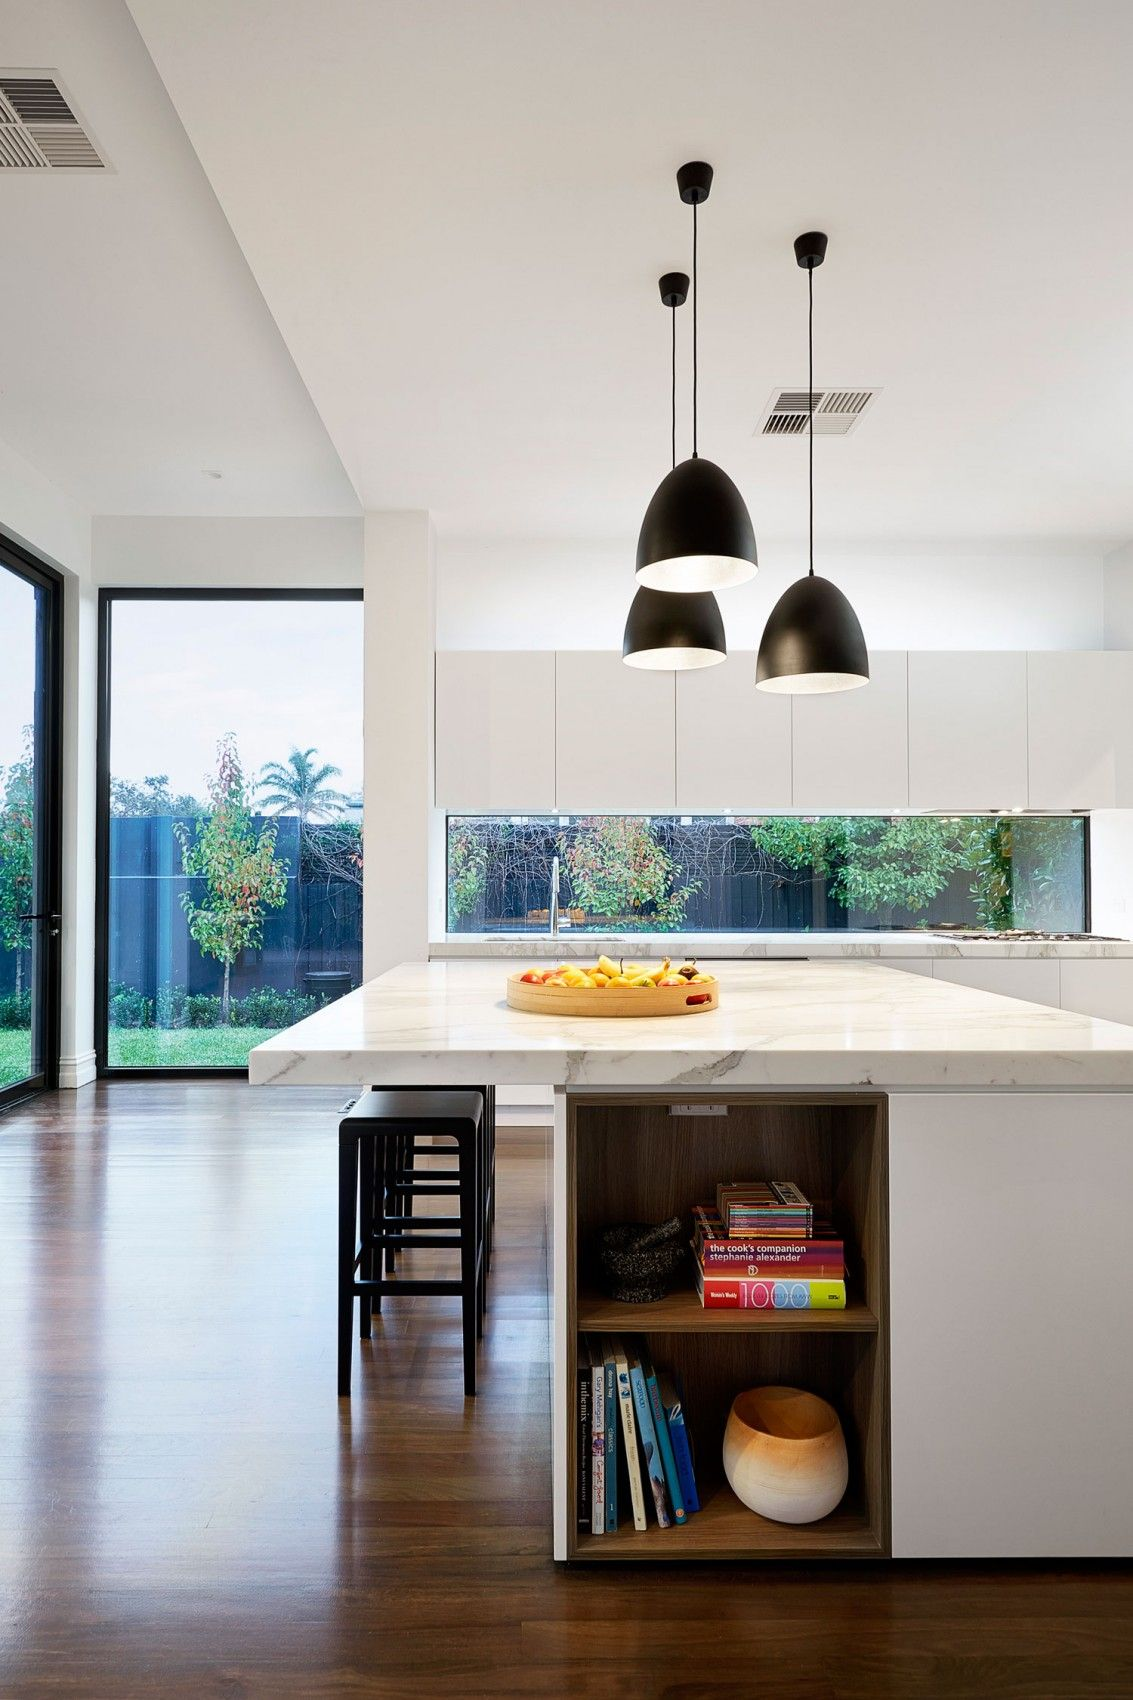 A Fresh Perspective: Window Backsplash Ideas And The Designs Around Them